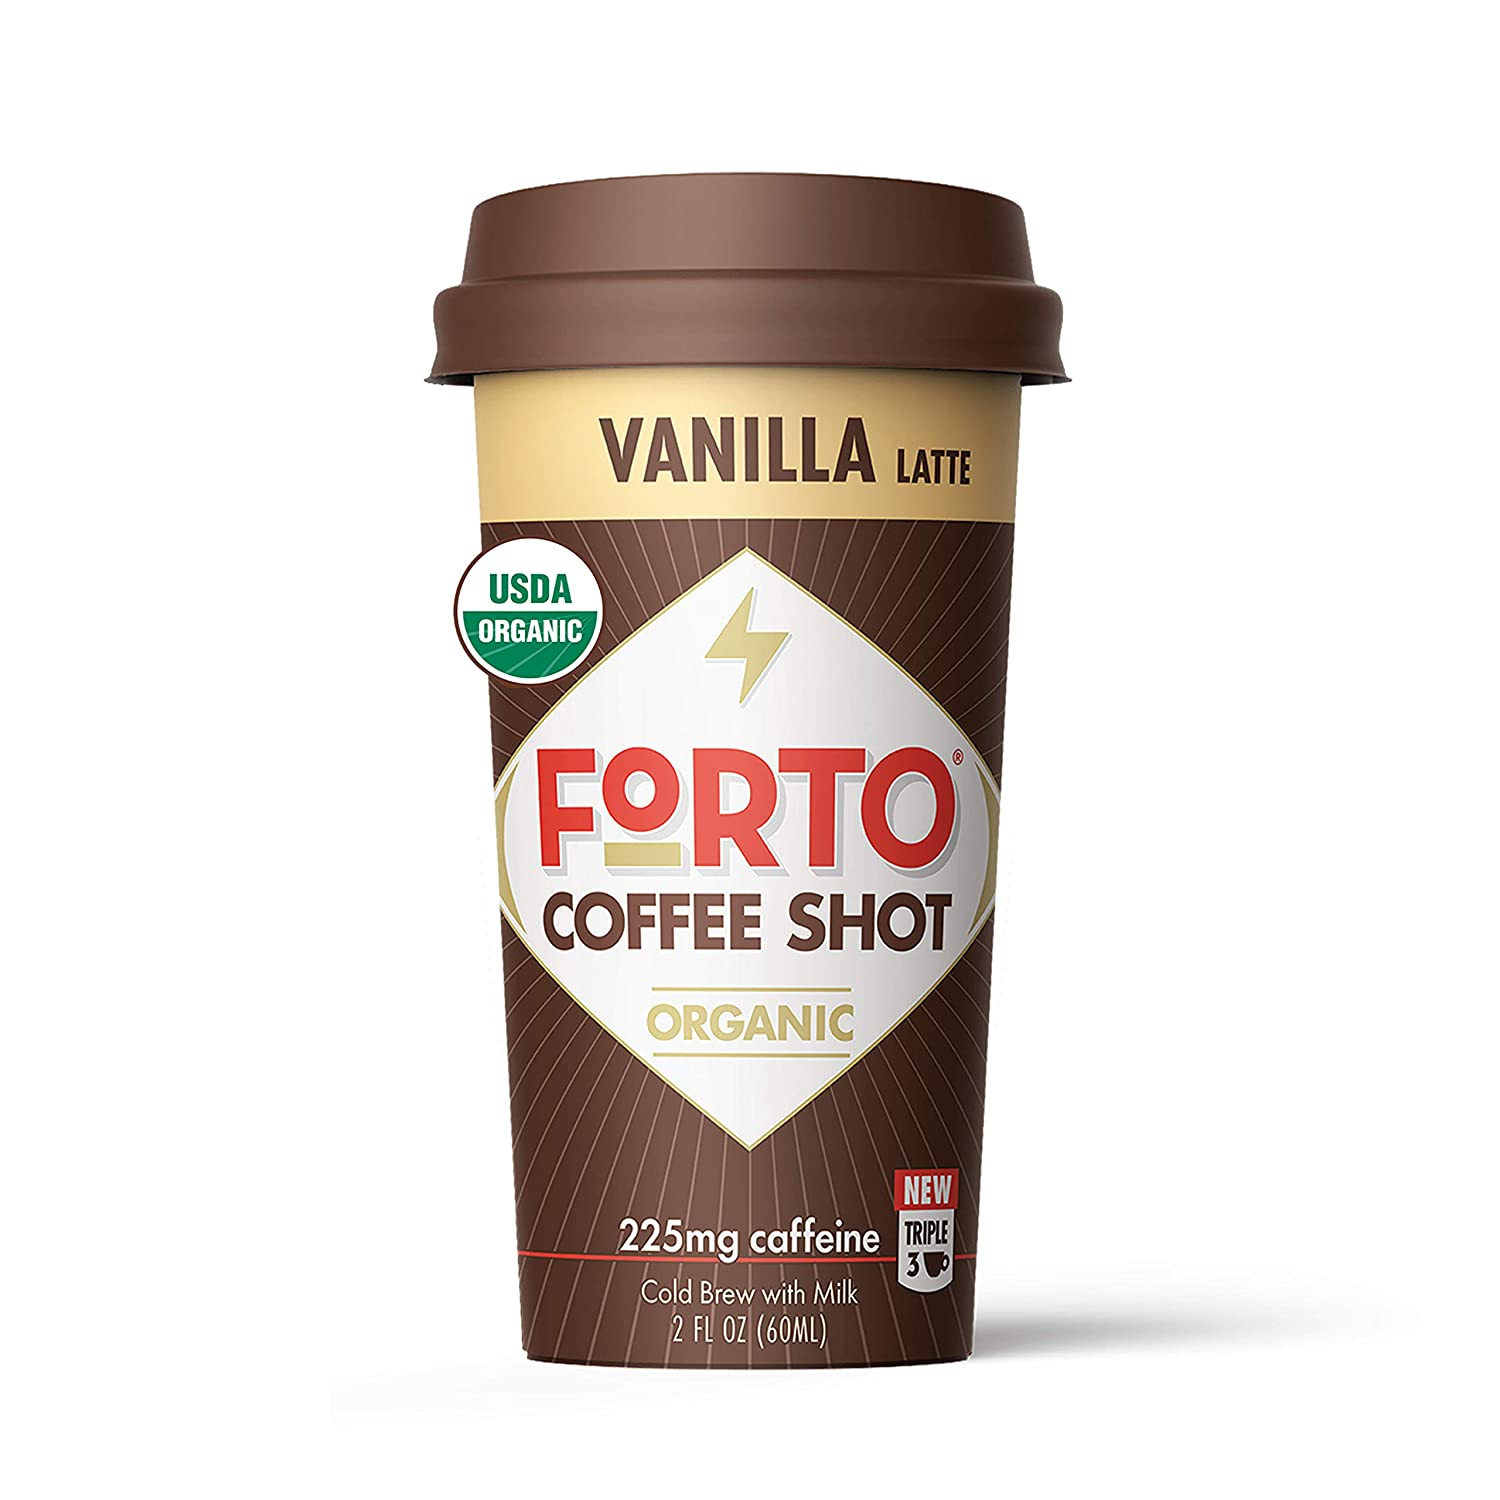 FORTO Coffee Shots - Vanilla Latte, Ready-to-Drink on the go, Cold Brew Coffee Shot - Fast Coffee Energy Boost, 2 Fl Oz, Pack of 6: Grocery & Gourmet Food